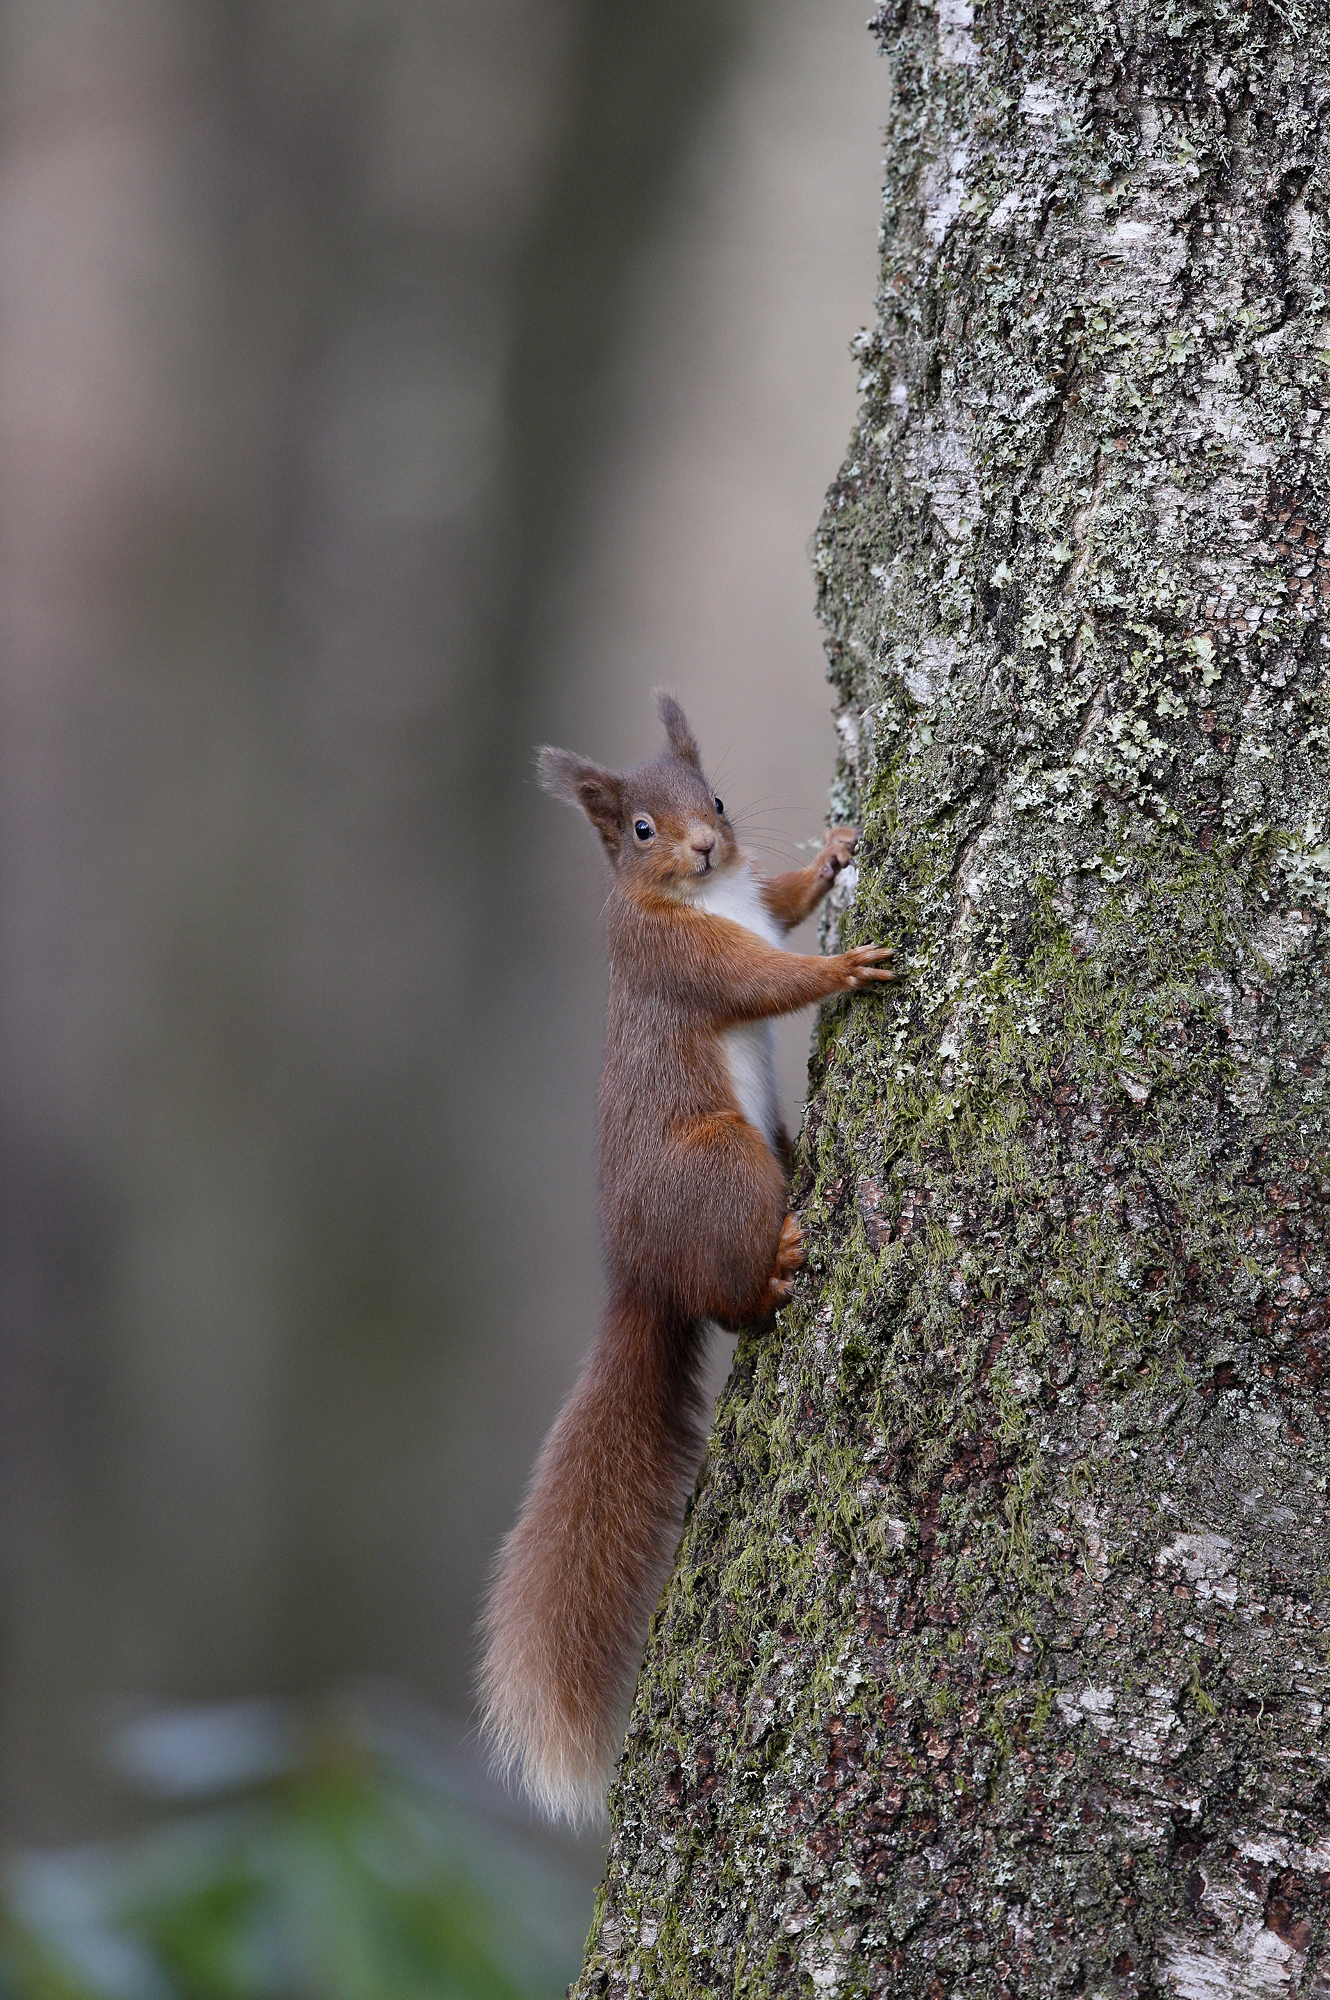 The Scottish Highlands is home to endangered red squirrels